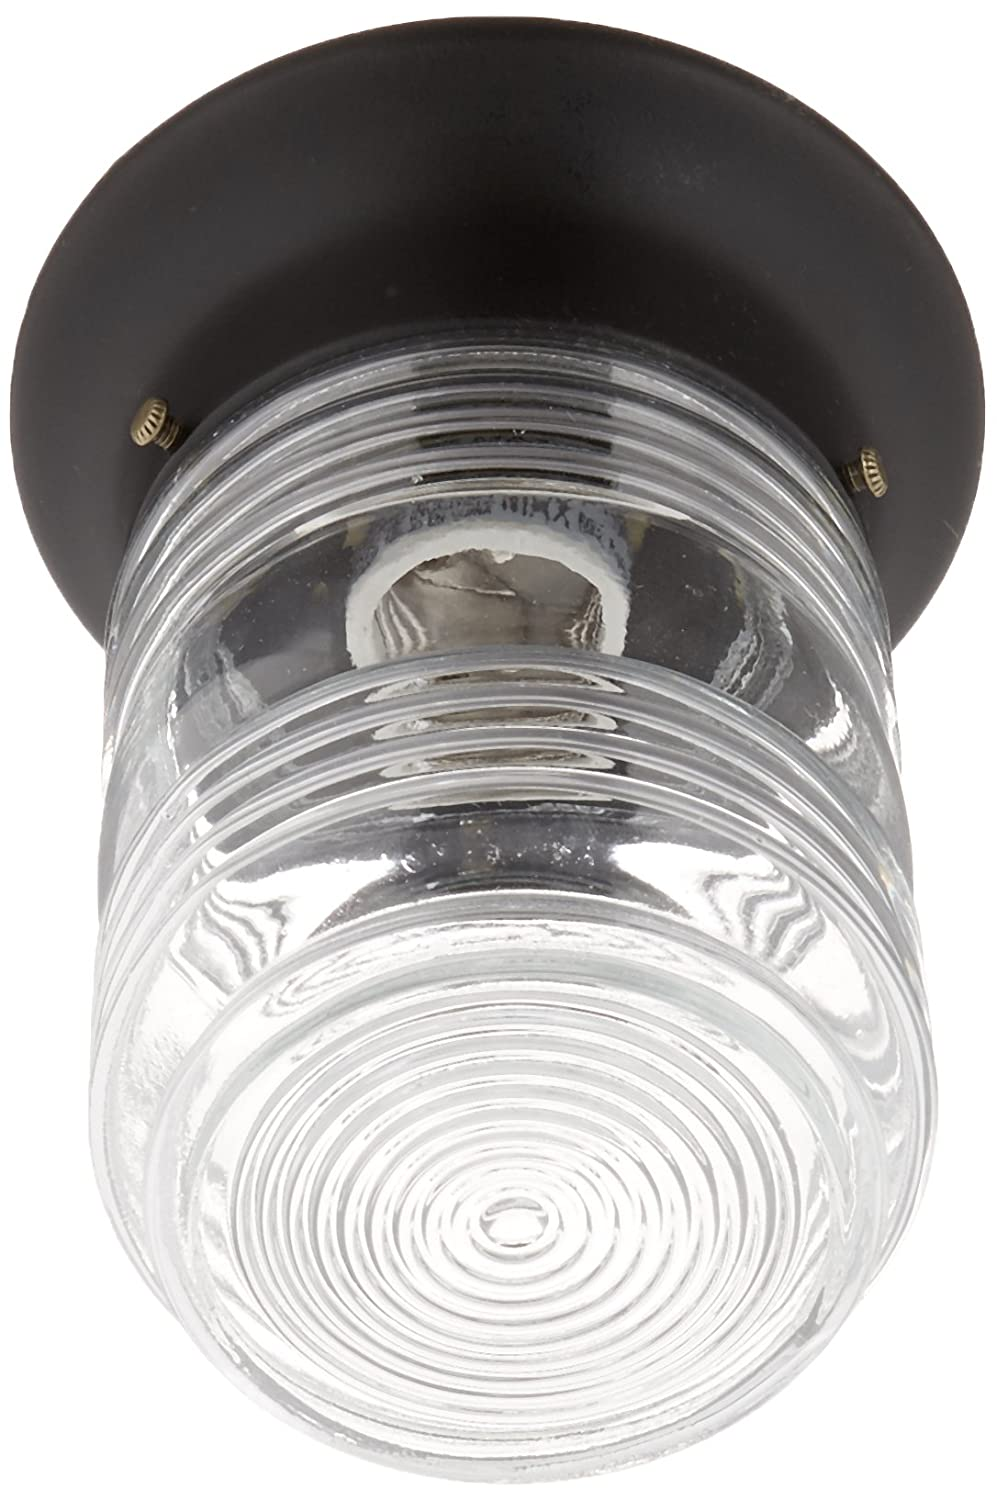 Amazon boston harbor hv 66919 bk3l porch light jelly jar amazon boston harbor hv 66919 bk3l porch light jelly jar black home improvement arubaitofo Image collections